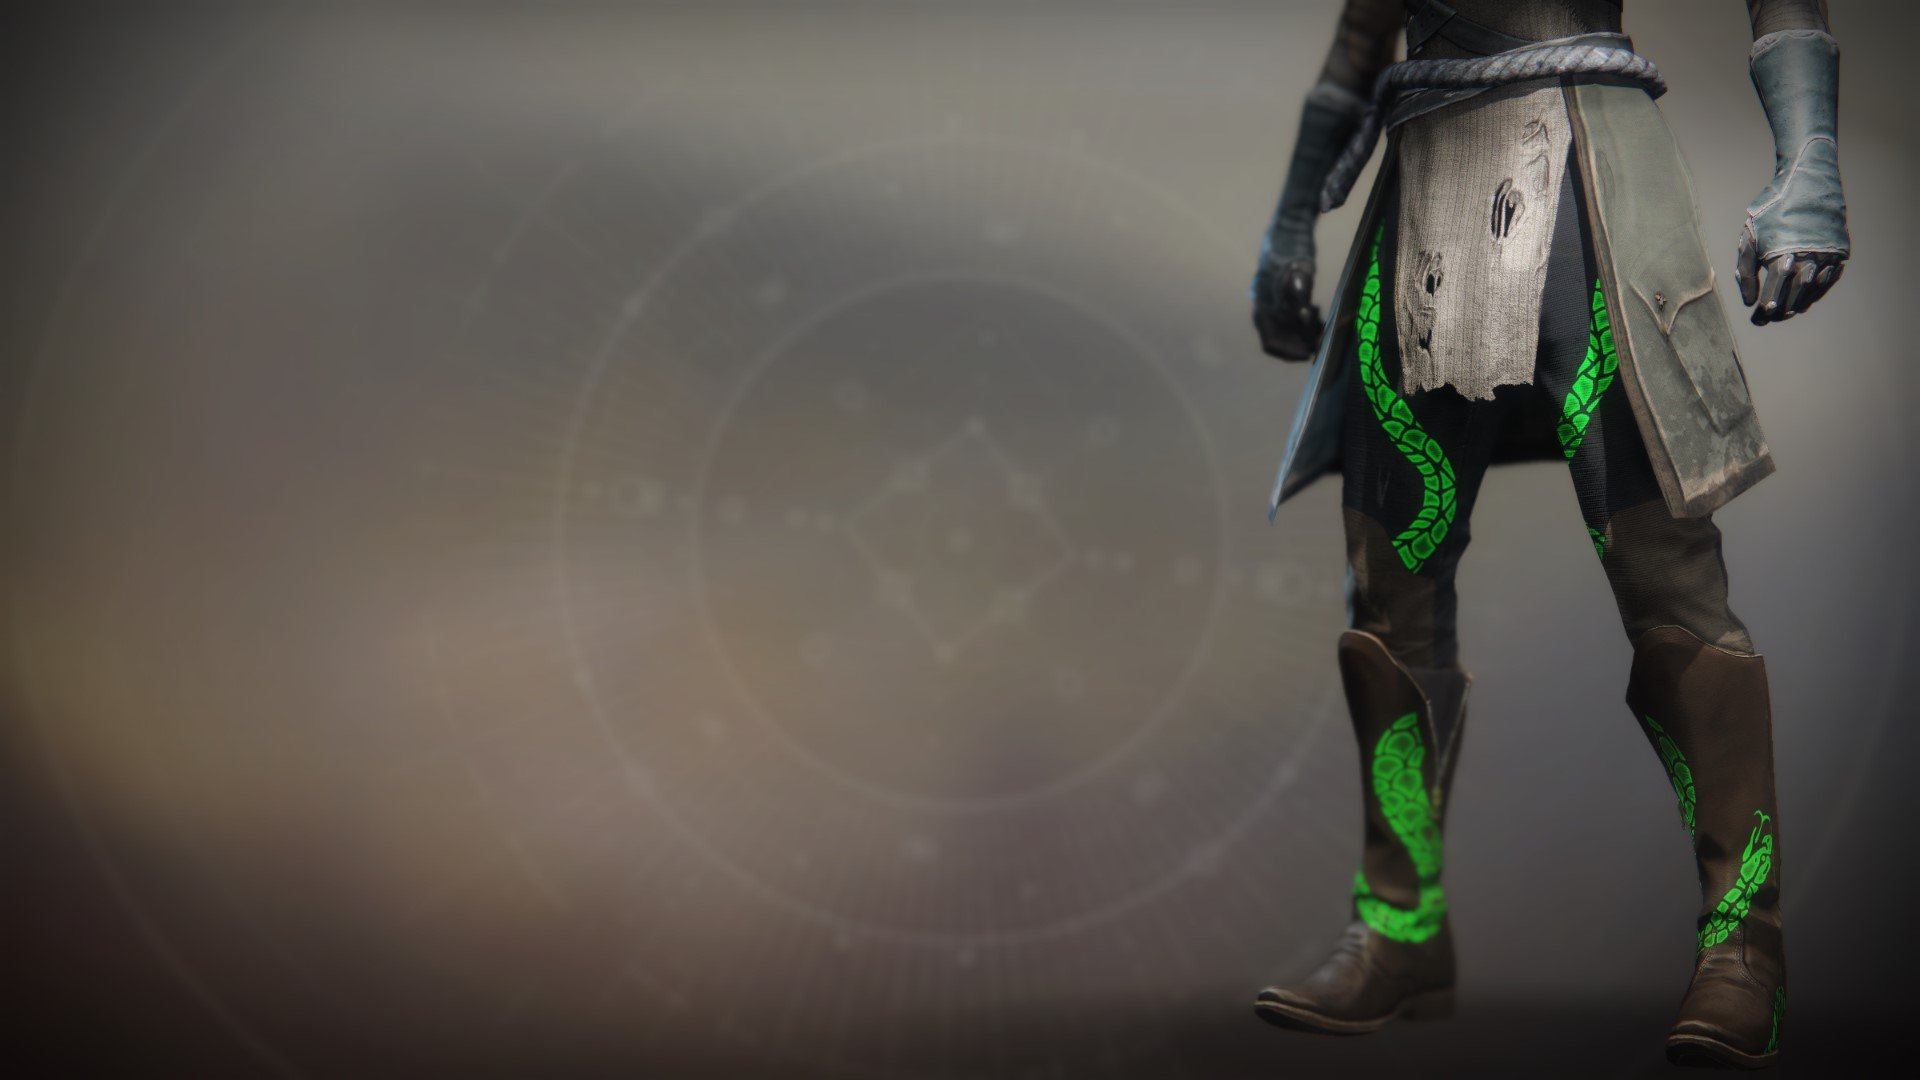 An in-game render of the Illicit Reaper Boots.